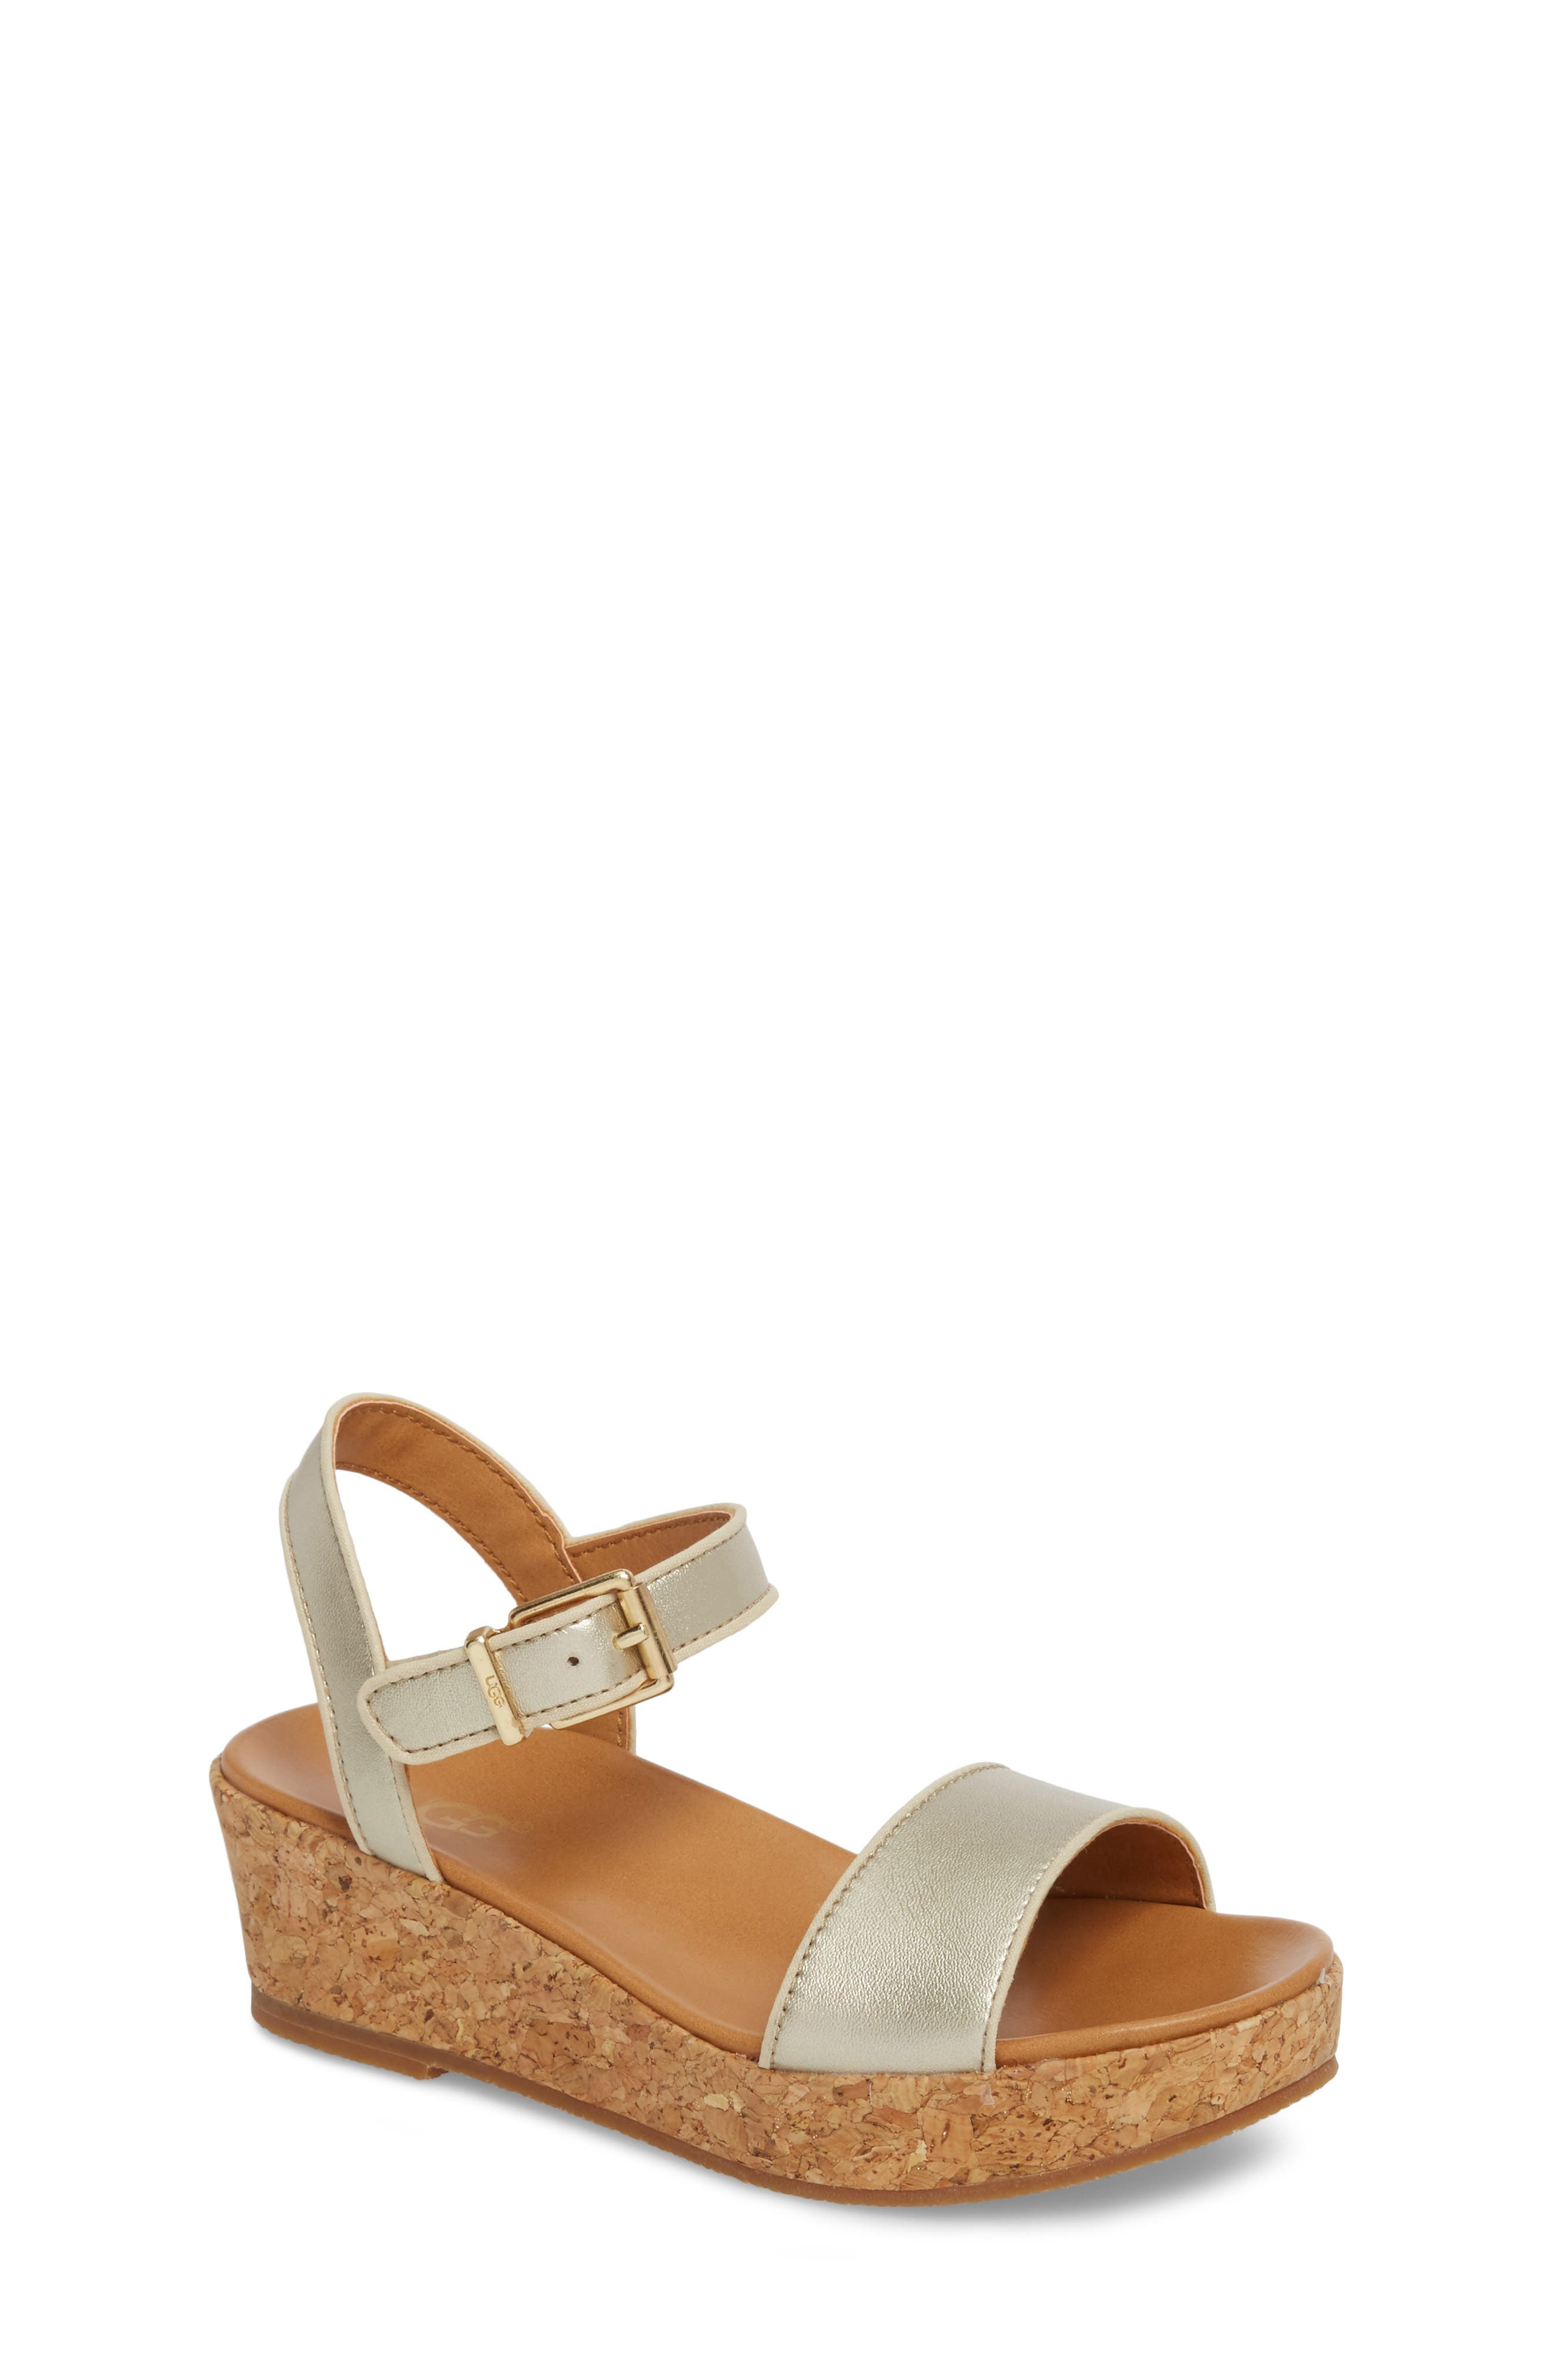 UGG<SUP>®</SUP>, Milley Wedge Sandal, Main thumbnail 1, color, GOLD